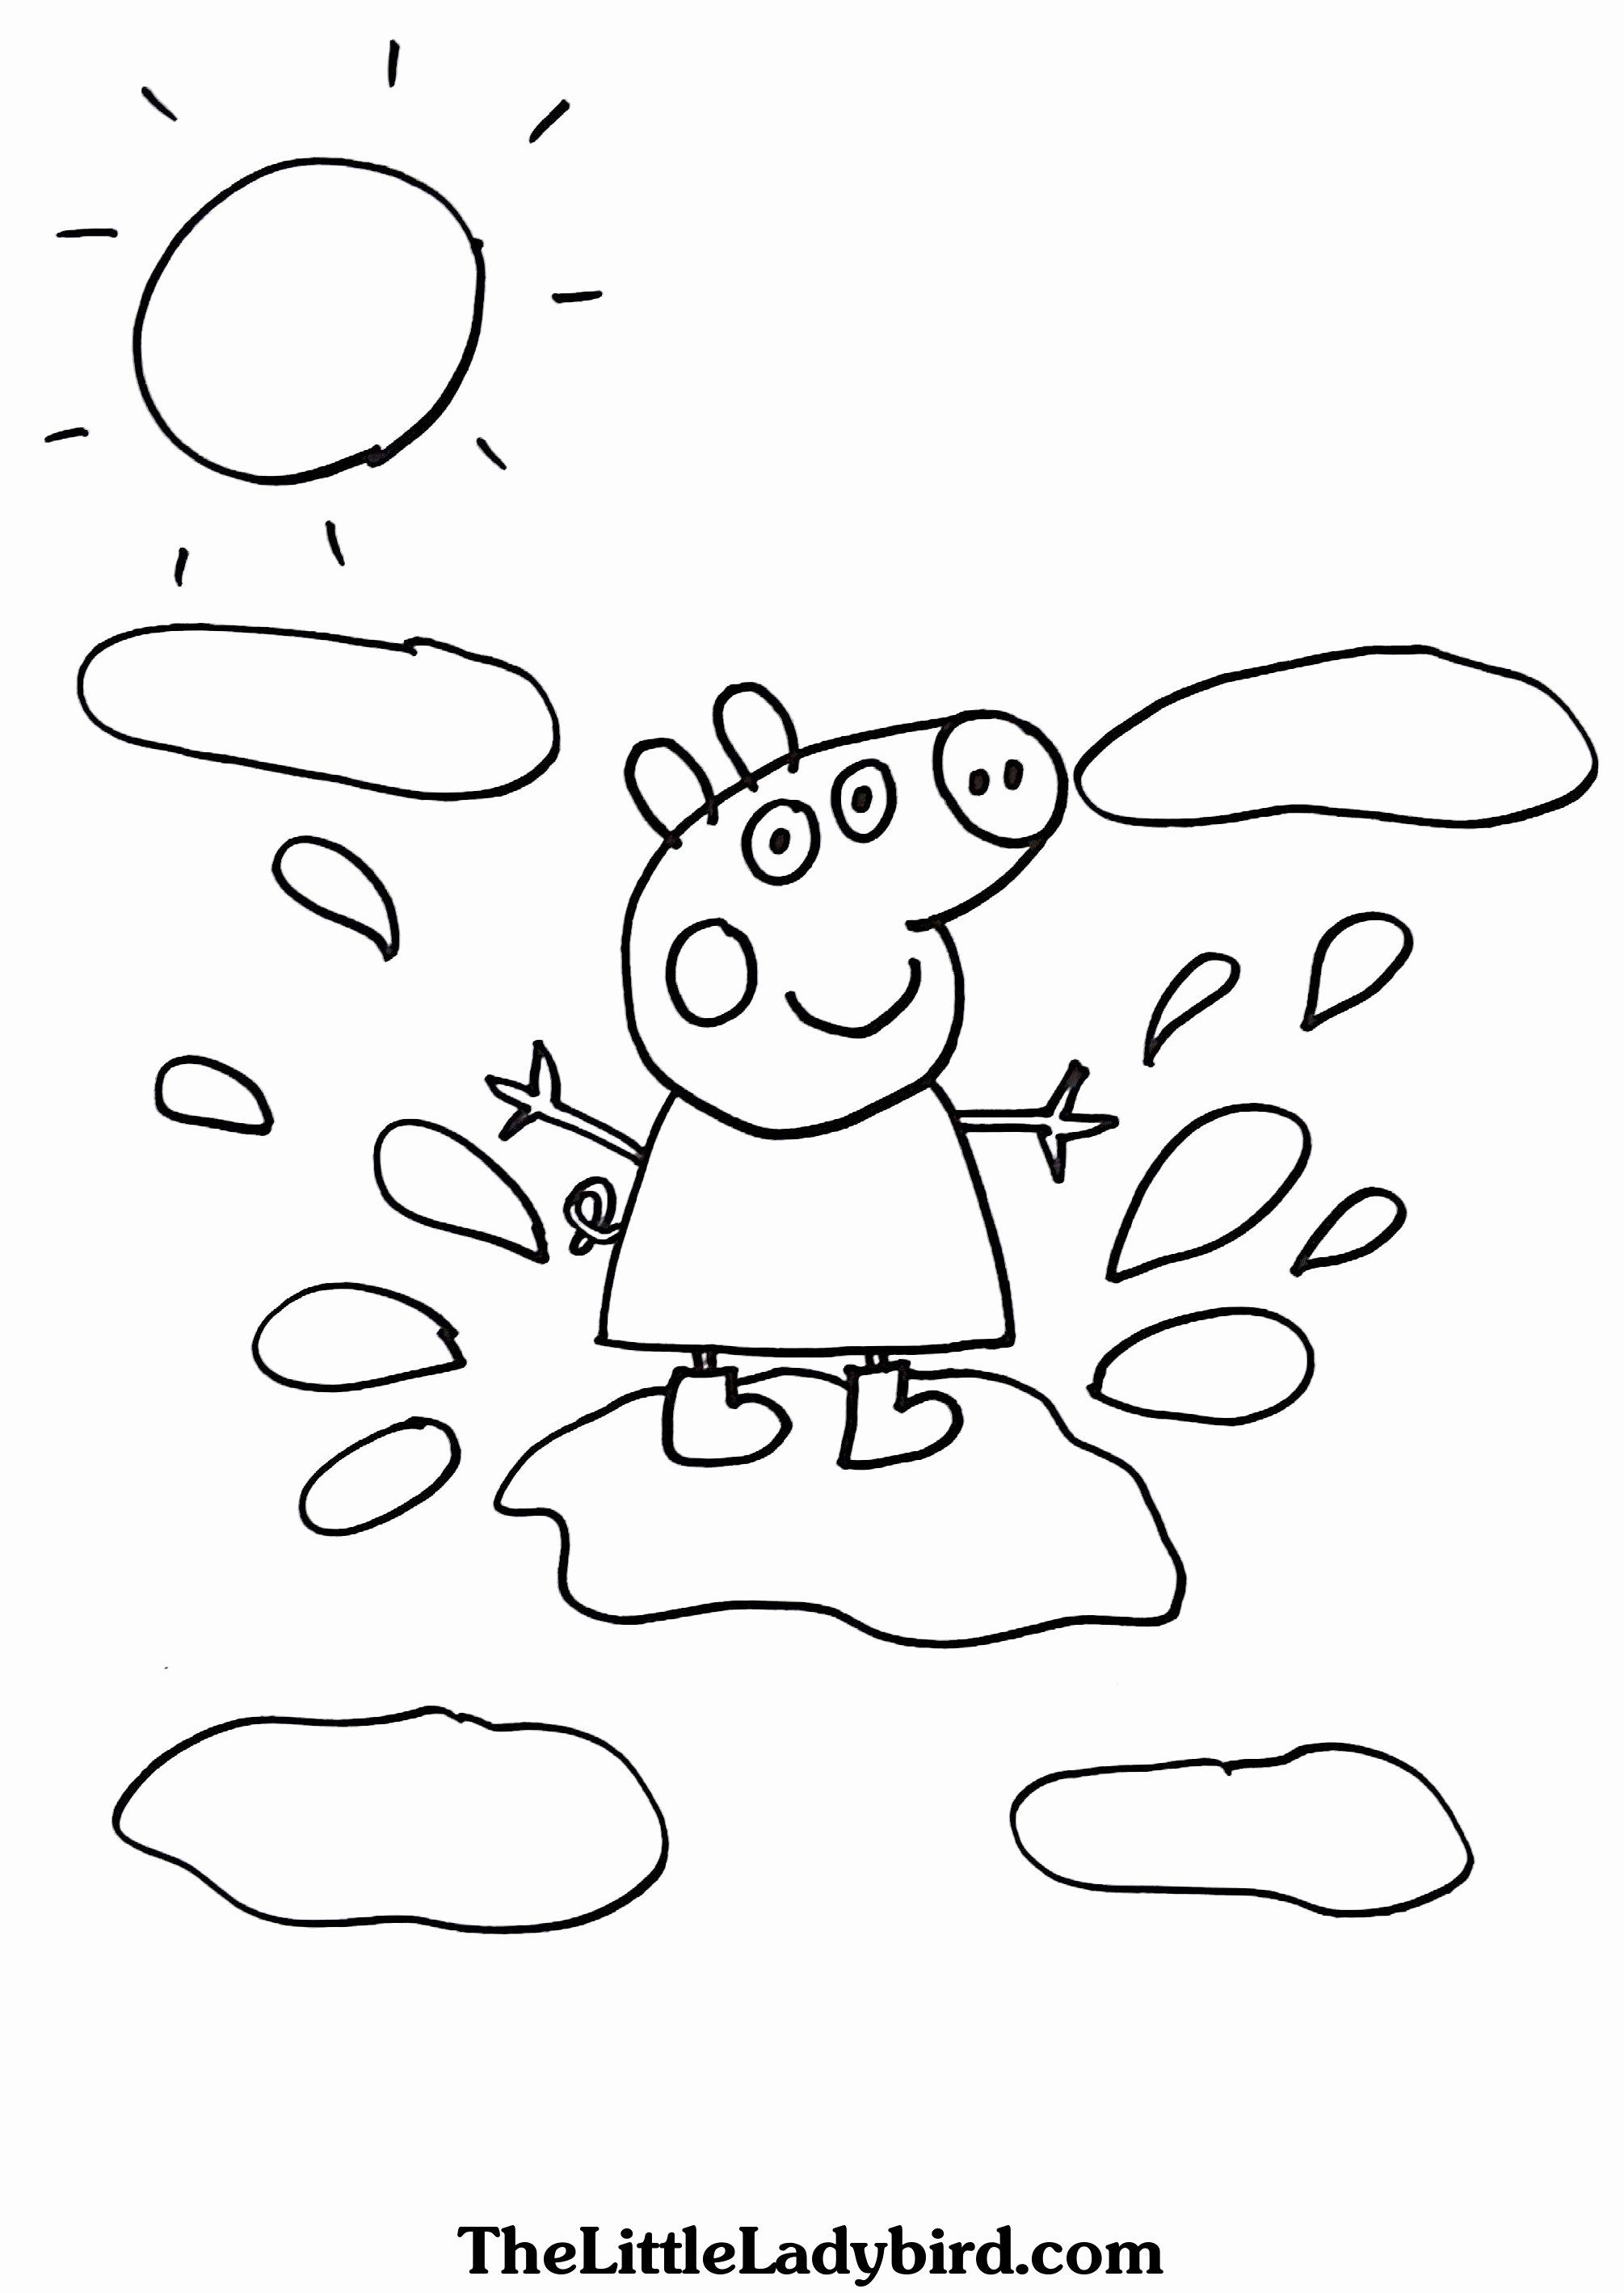 Youtube Logo Coloring Pages Fresh Peppa Pig Coloring Pages Ice Cream Coloring Pages Di 2020 Peppa Pig Beautiful